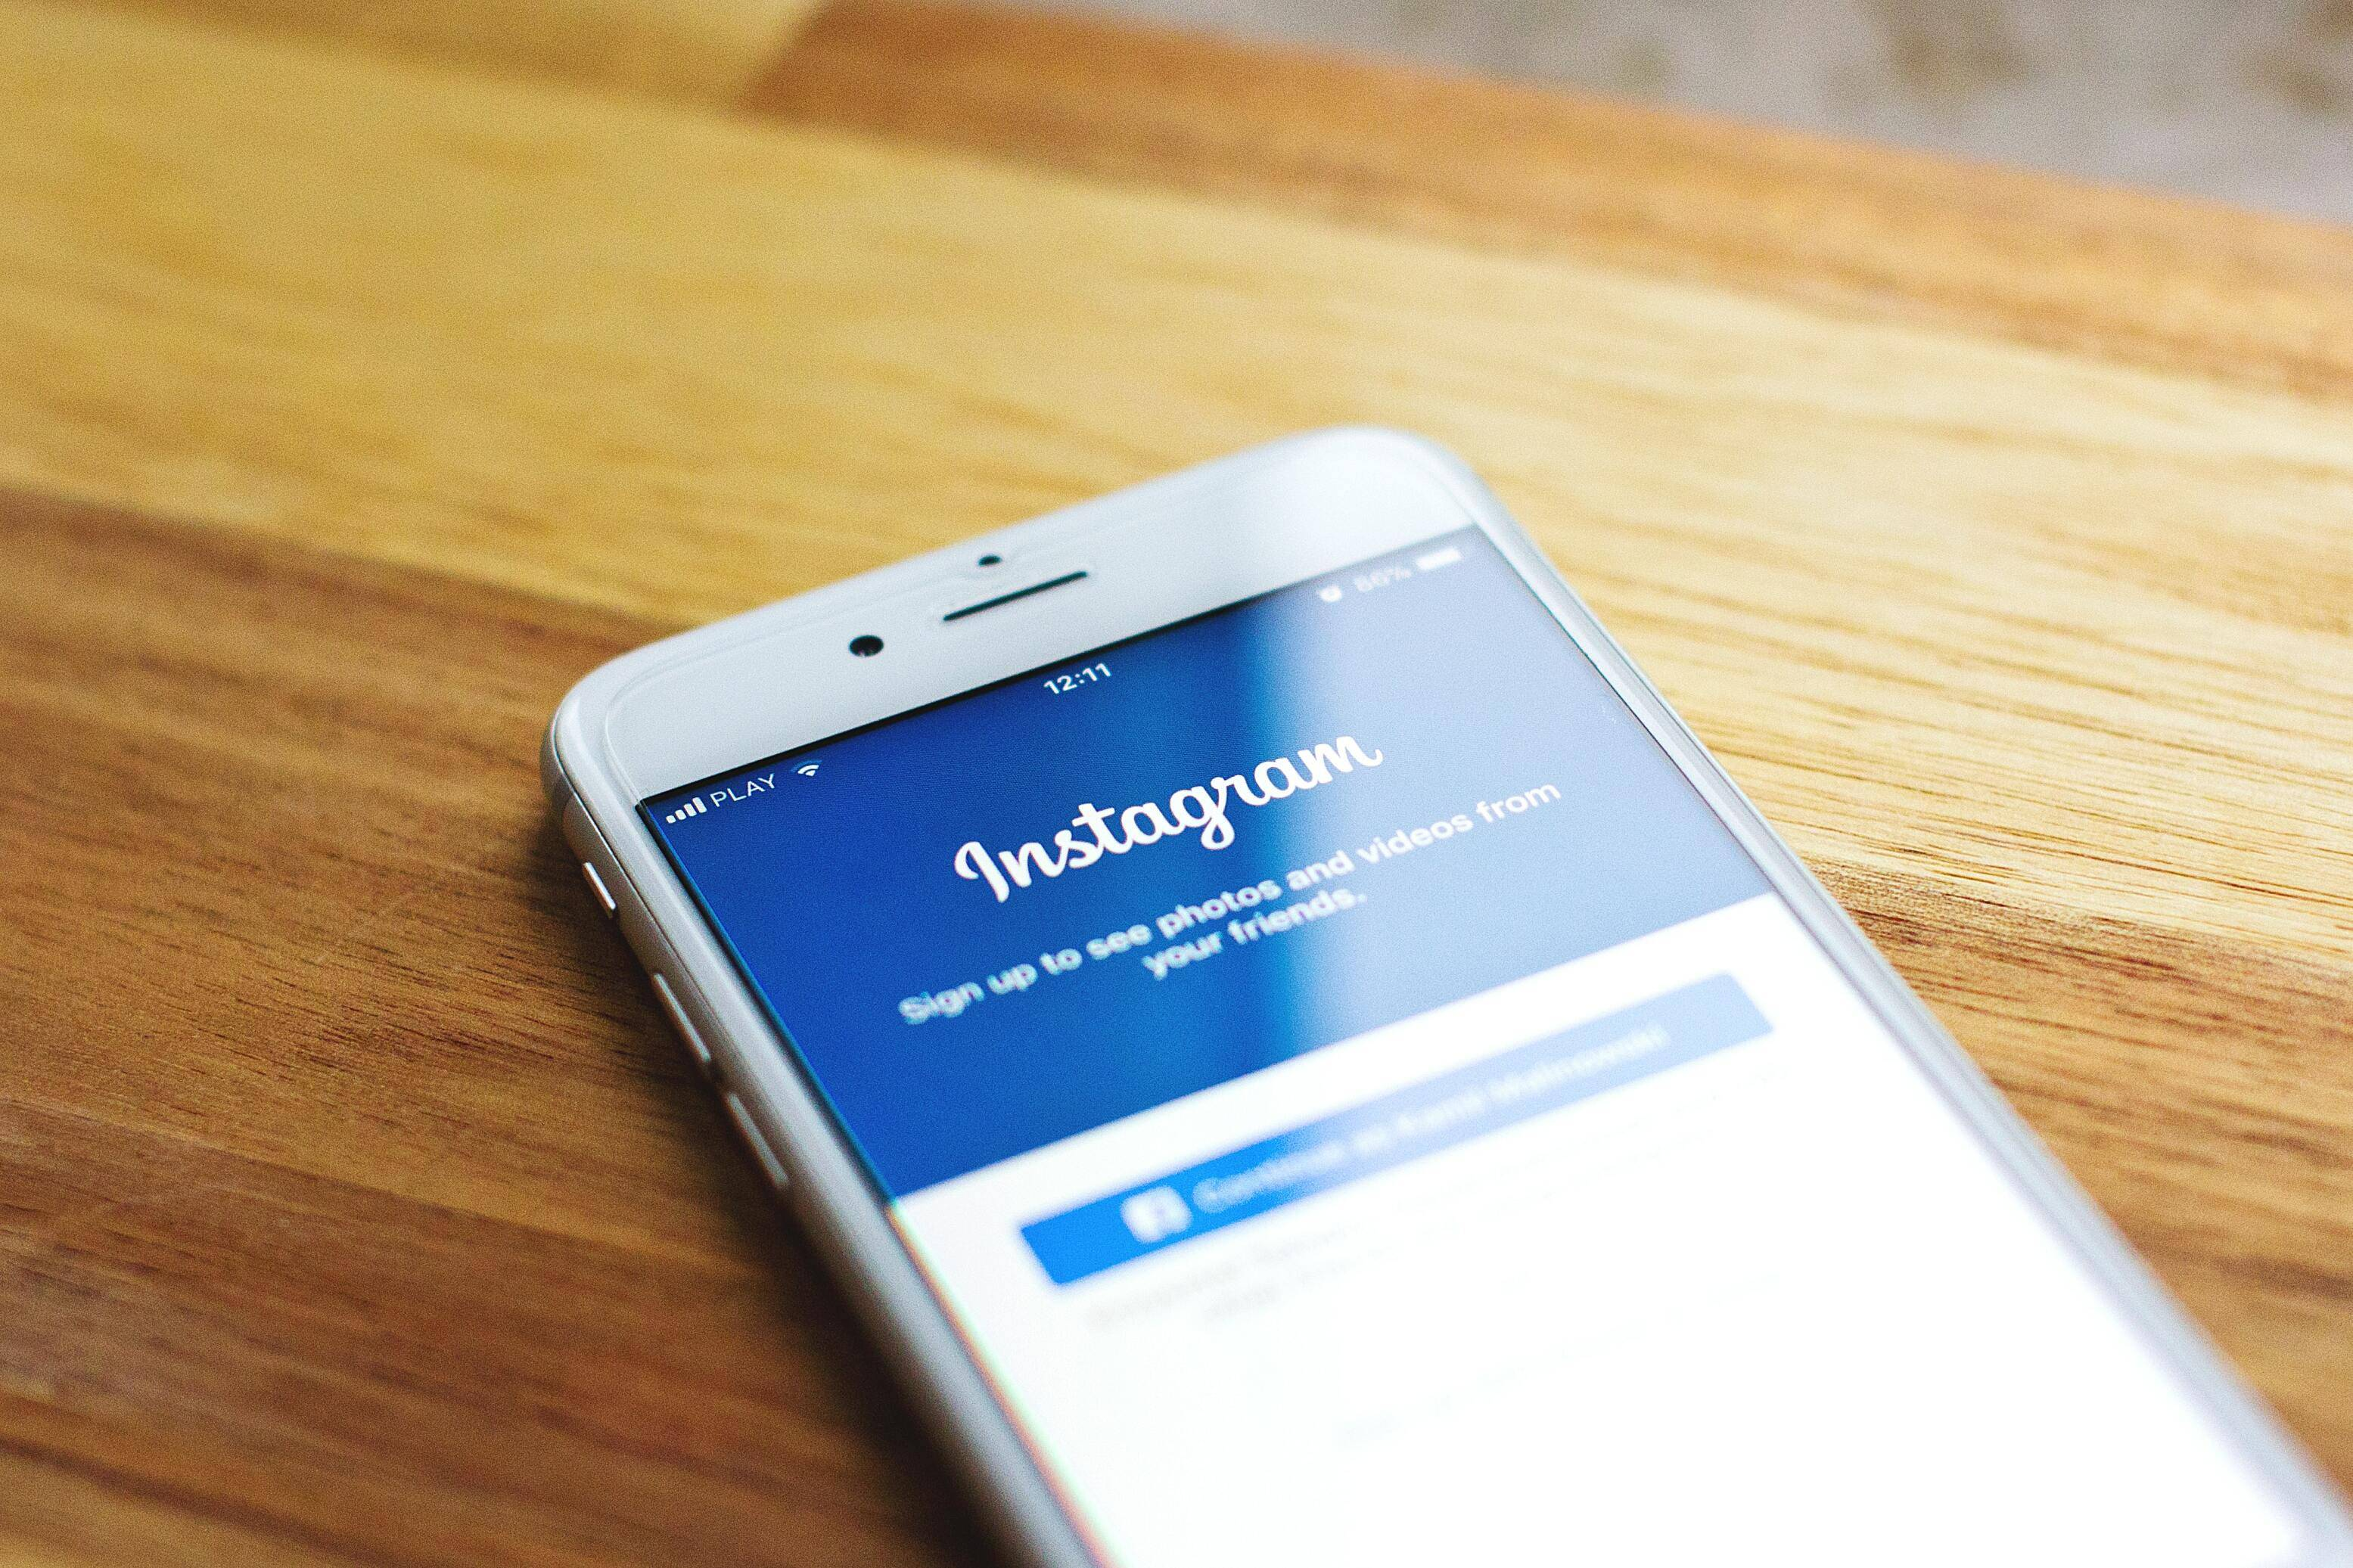 The Financially Savvy – connecting investors through instagram